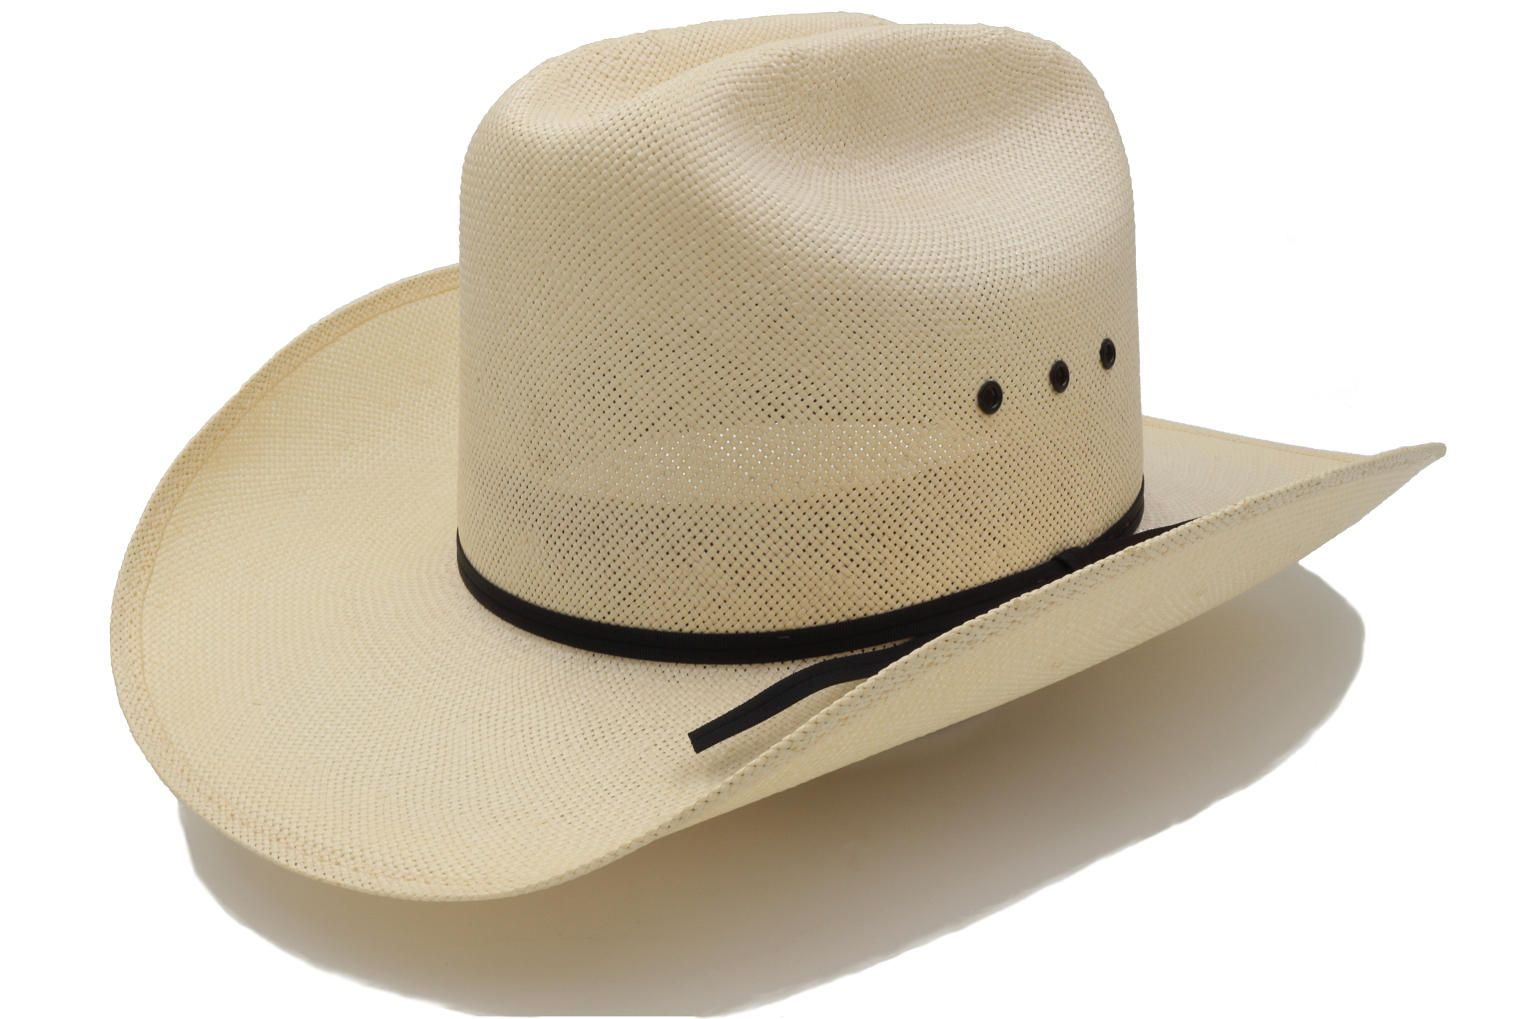 Stratton Hats Straw western style hat buyers guide